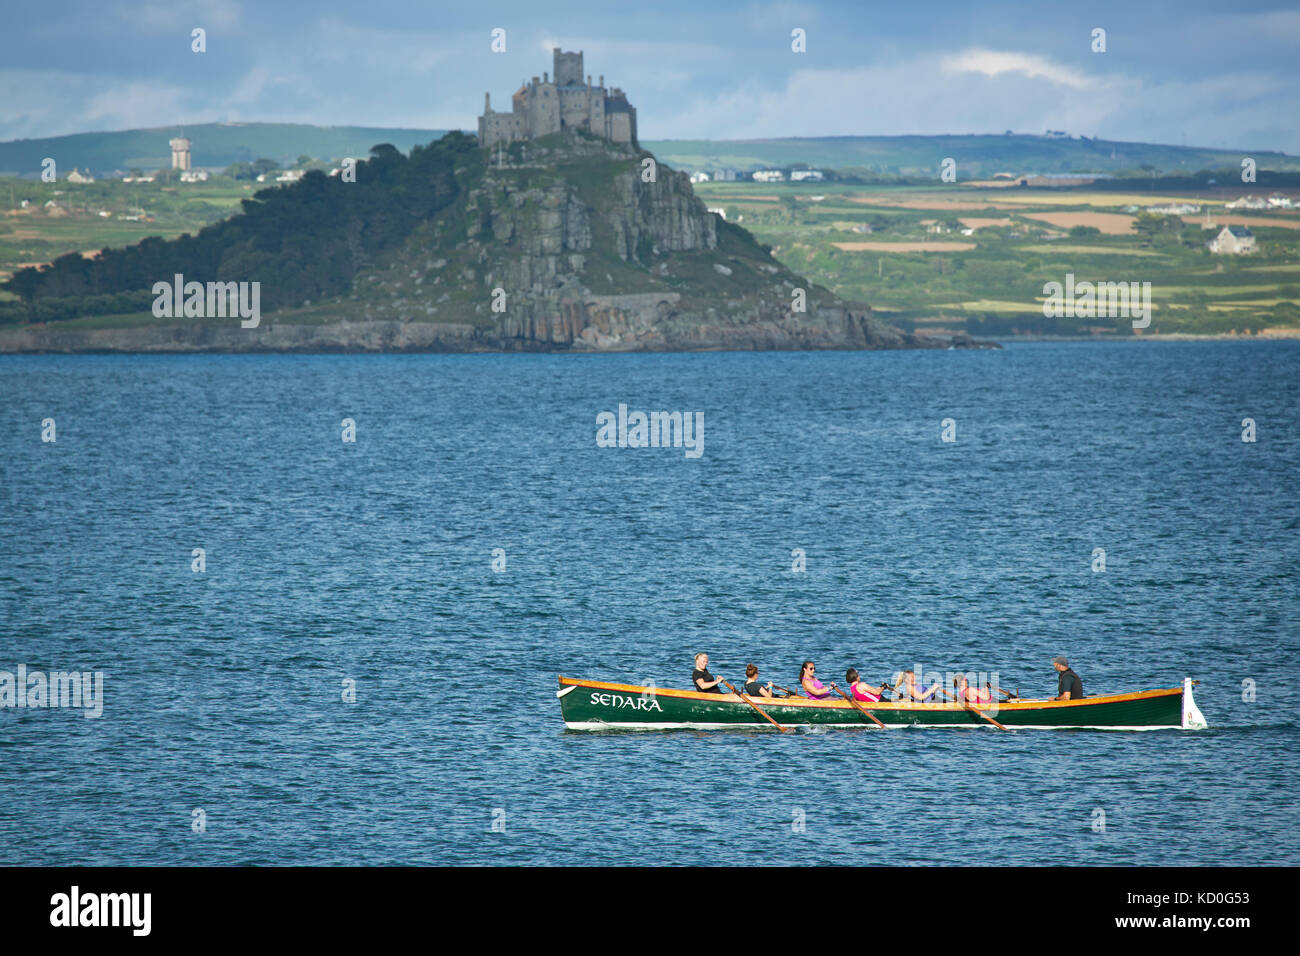 A Cornish pilot gig in Mounts bay,Penzance,England,UK - Stock Image